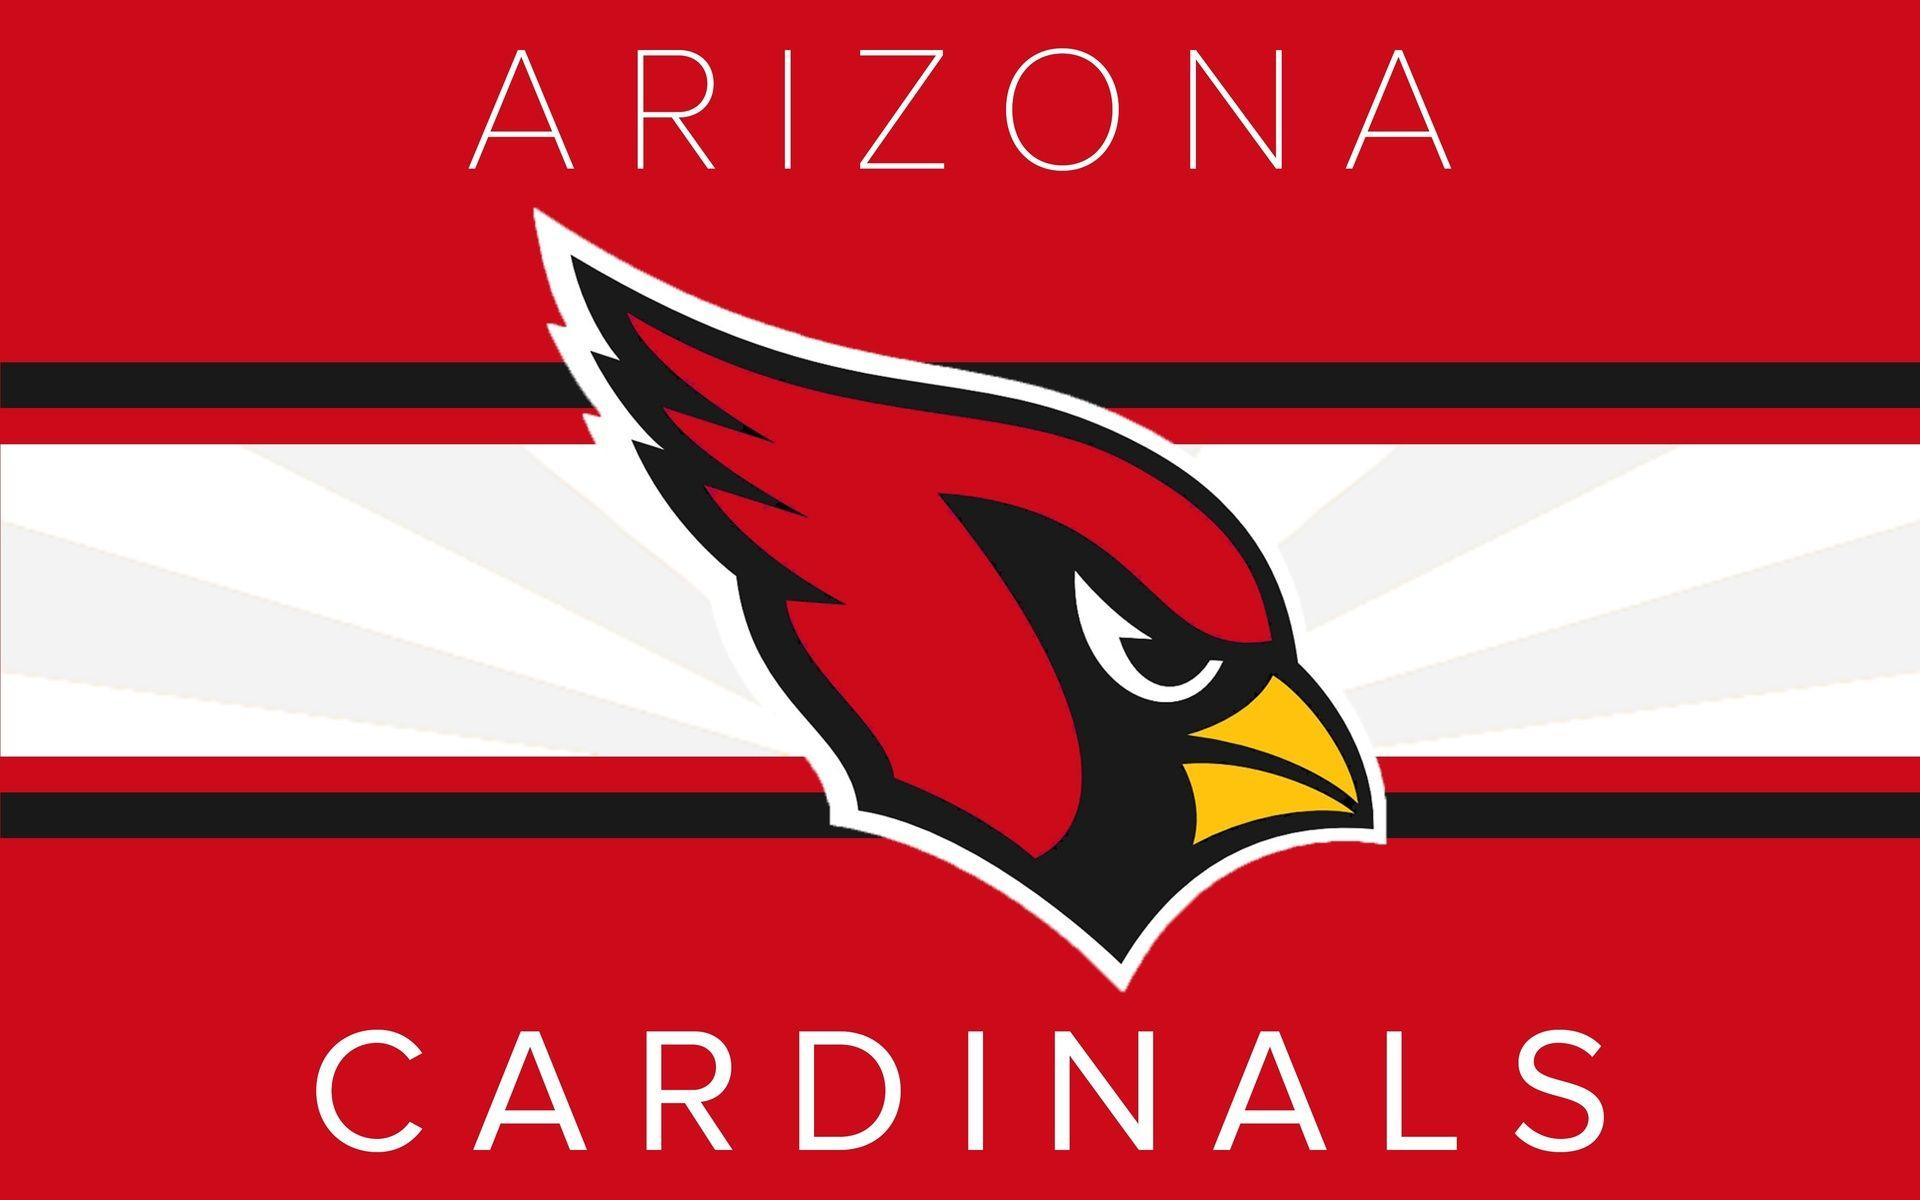 1920x1200 American Football, Arizona Cardinals Logo, Nfl, Sports ...